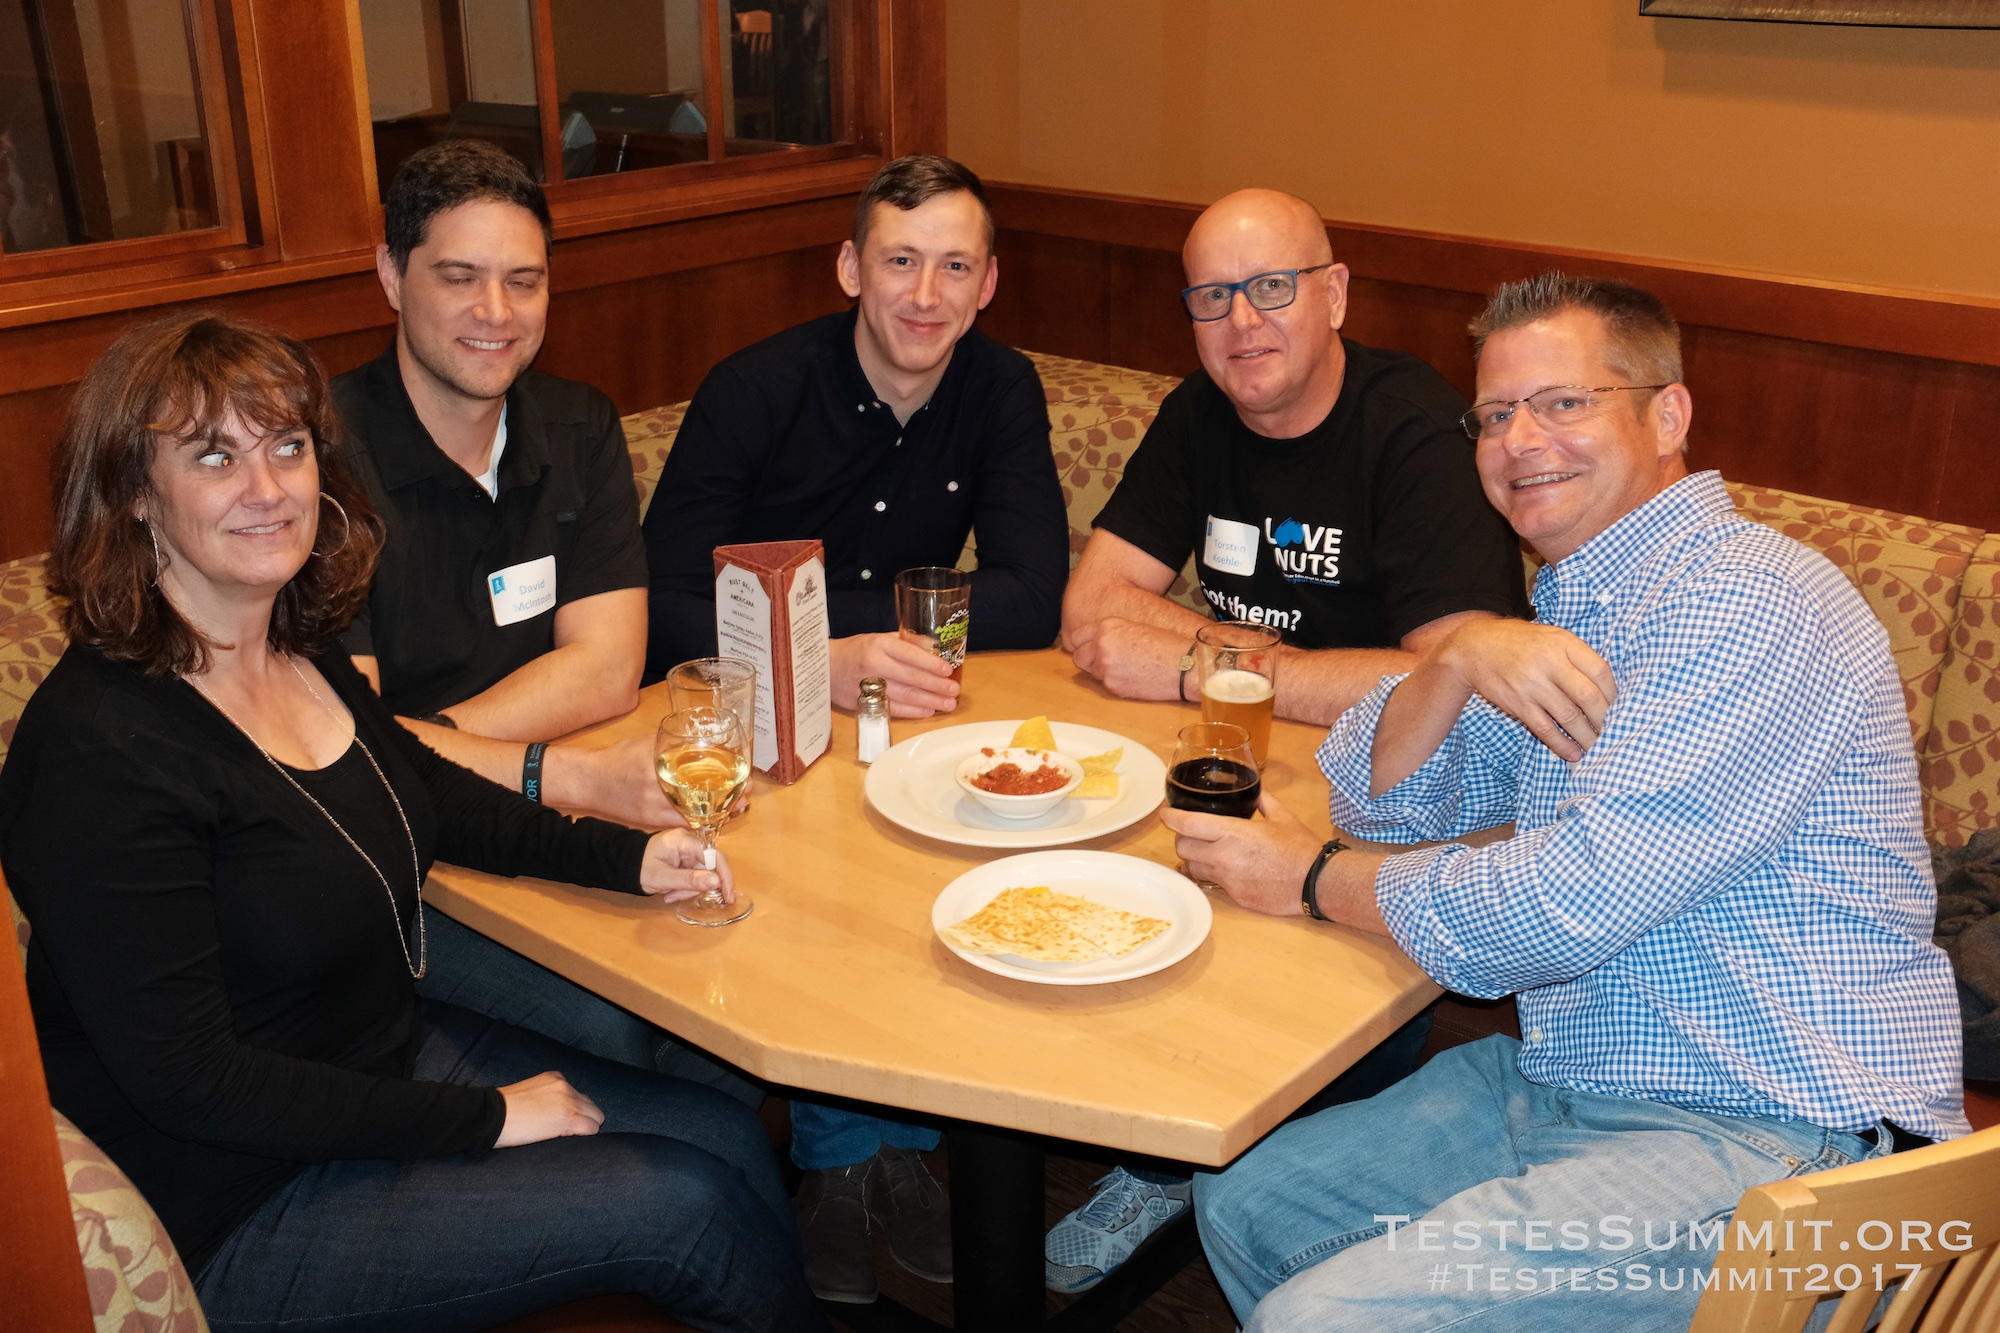 TestesSummit2017-246_DSCF5775-HD-WM.jpg